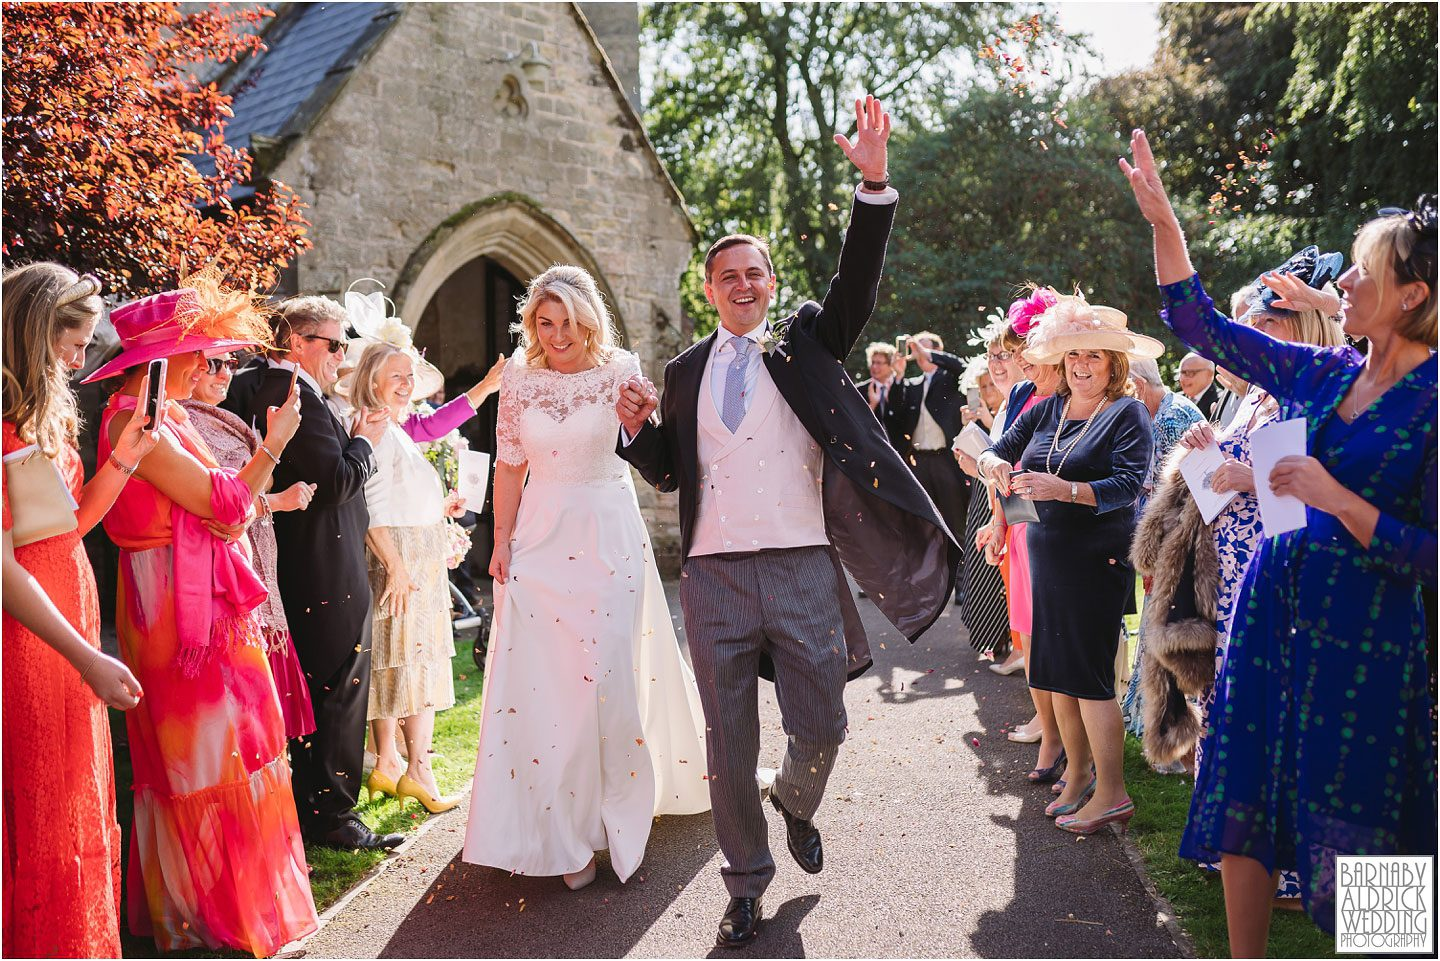 Yorkshire Garden Marquee Wedding Photo, Wedding Photography at a Yorkshire Garden Wedding, Bedale Yorkshire Marquee Wedding pictures, Wedding Photographer Yorkshire